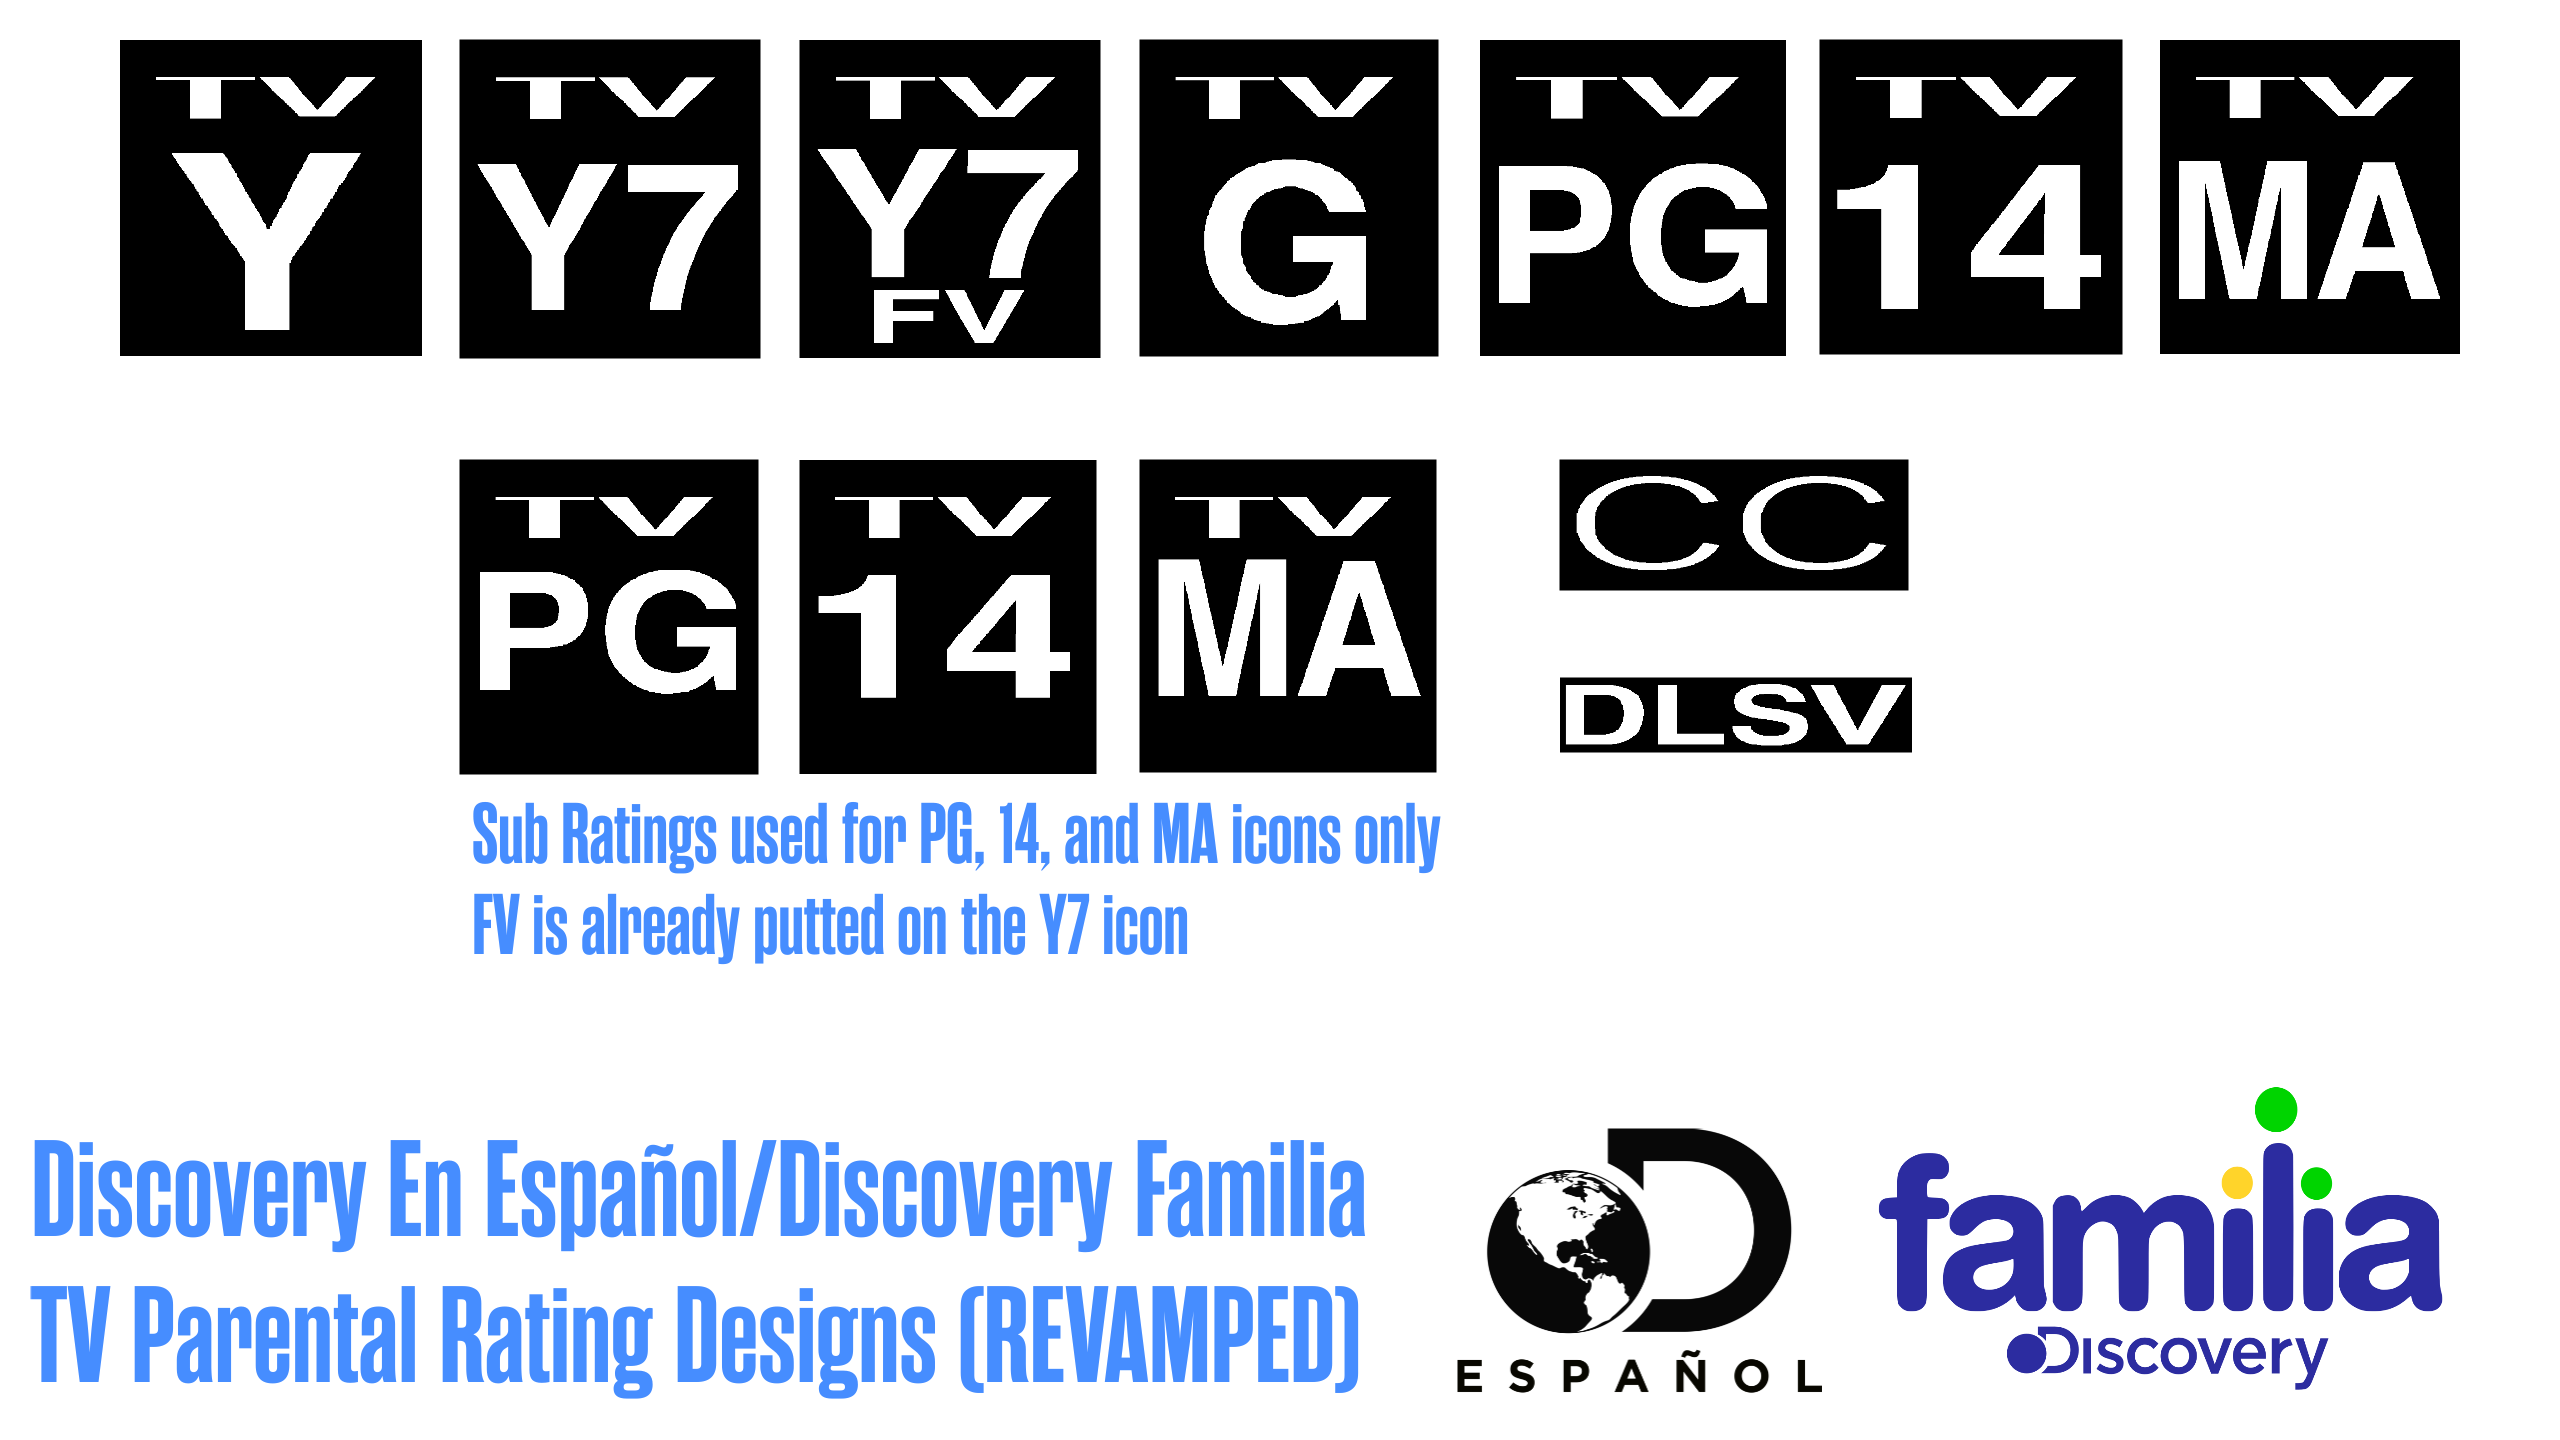 Discovery En Espanol/Familia Rating Design REVAMP by